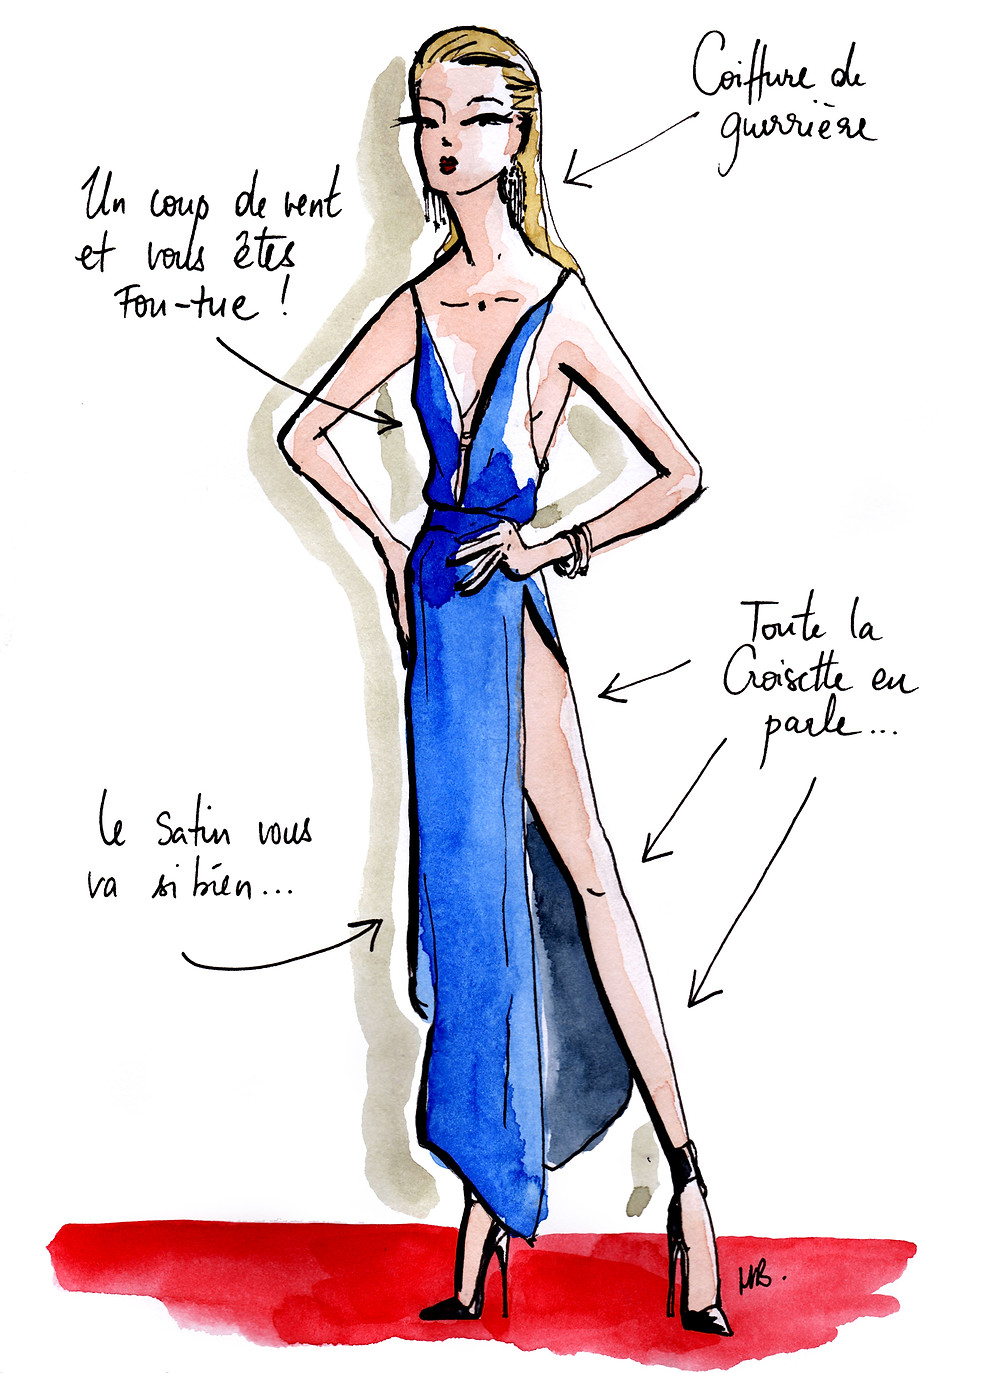 Tenue Festival de Cannes - L'ultra sexy - Dessin/Illustration Habile Buston